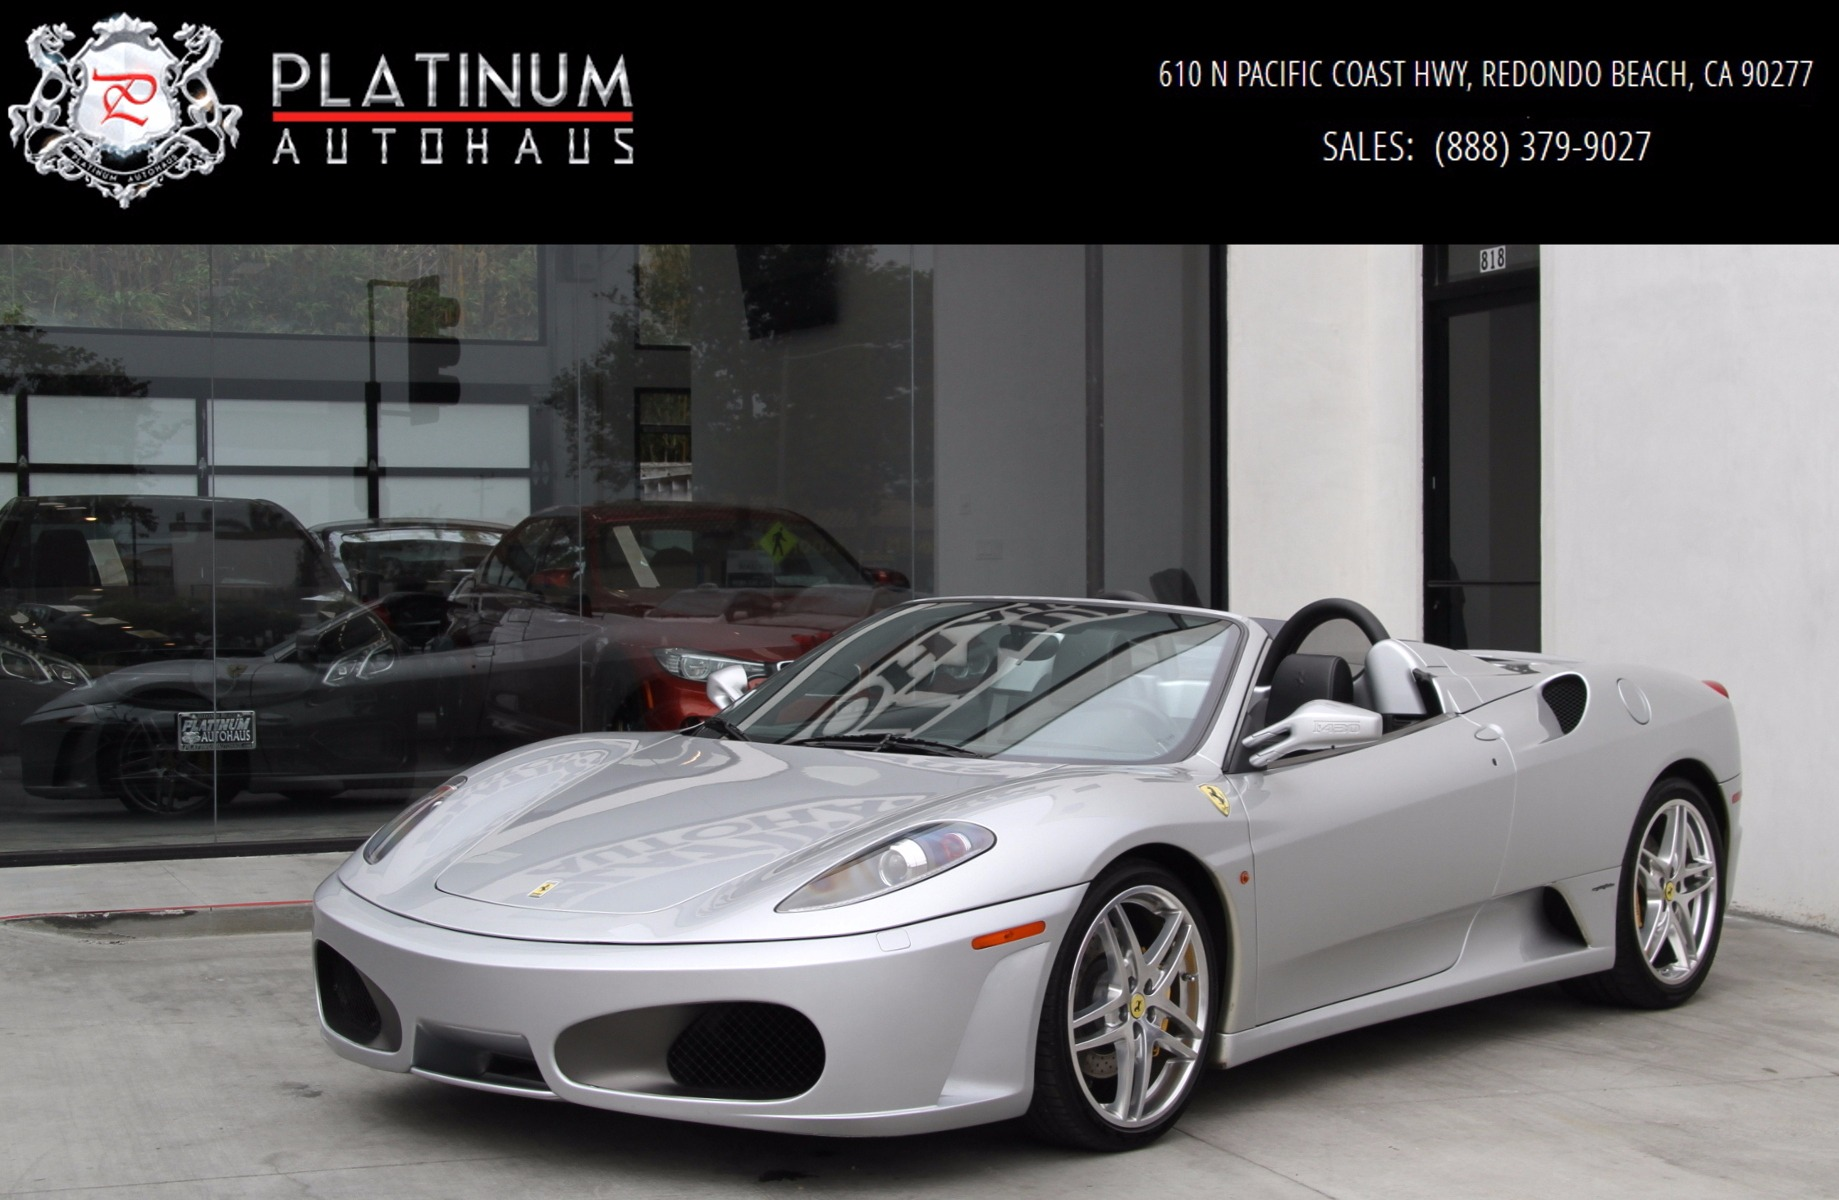 Free Vehicle History Report By Vin >> 2006 Ferrari F430 Spider F1 Stock # 5654A for sale near ...